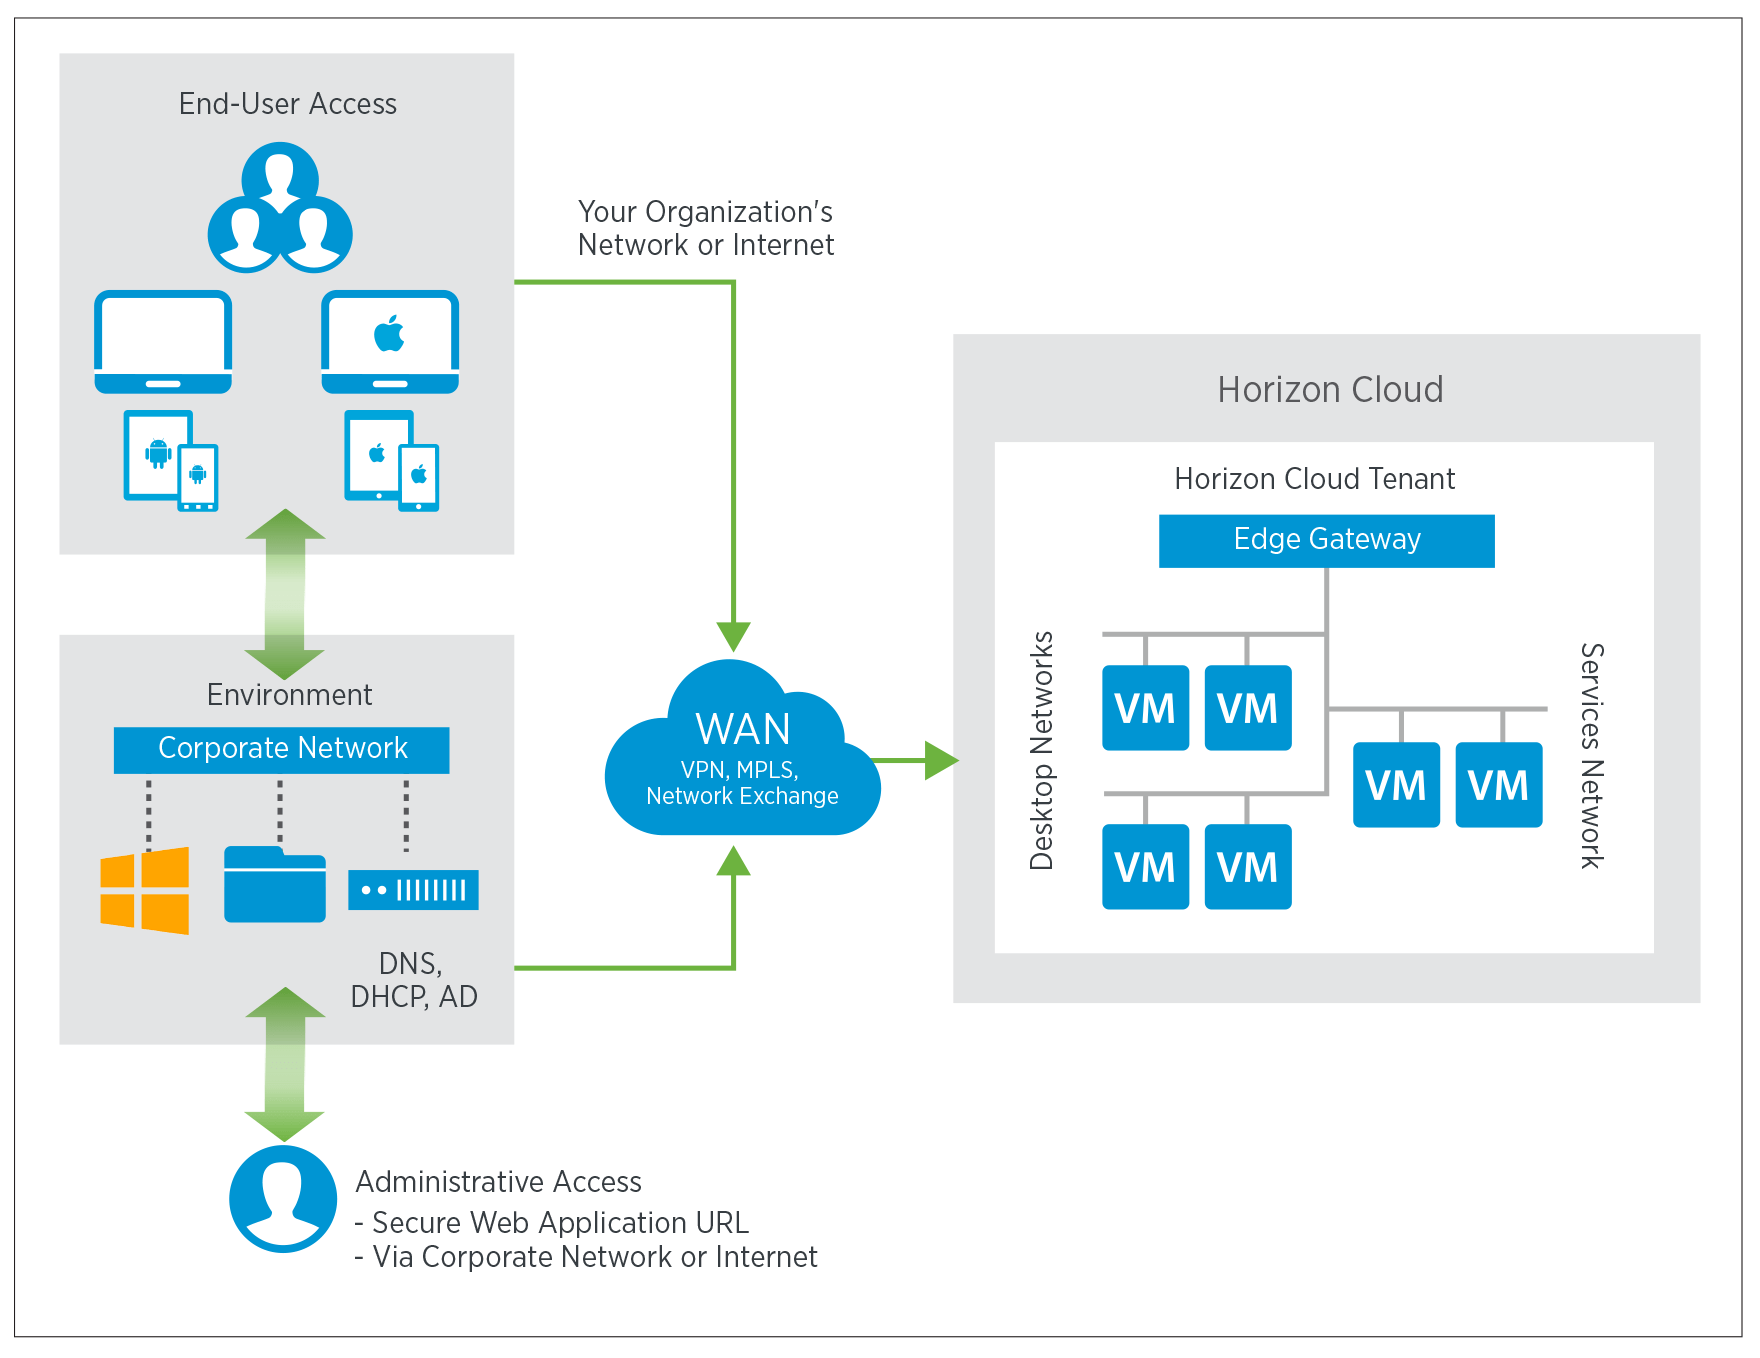 Tivoli Access Manager Architecture Overview Announcing Vmware Horizon Cloud With Hosted Infrastructure